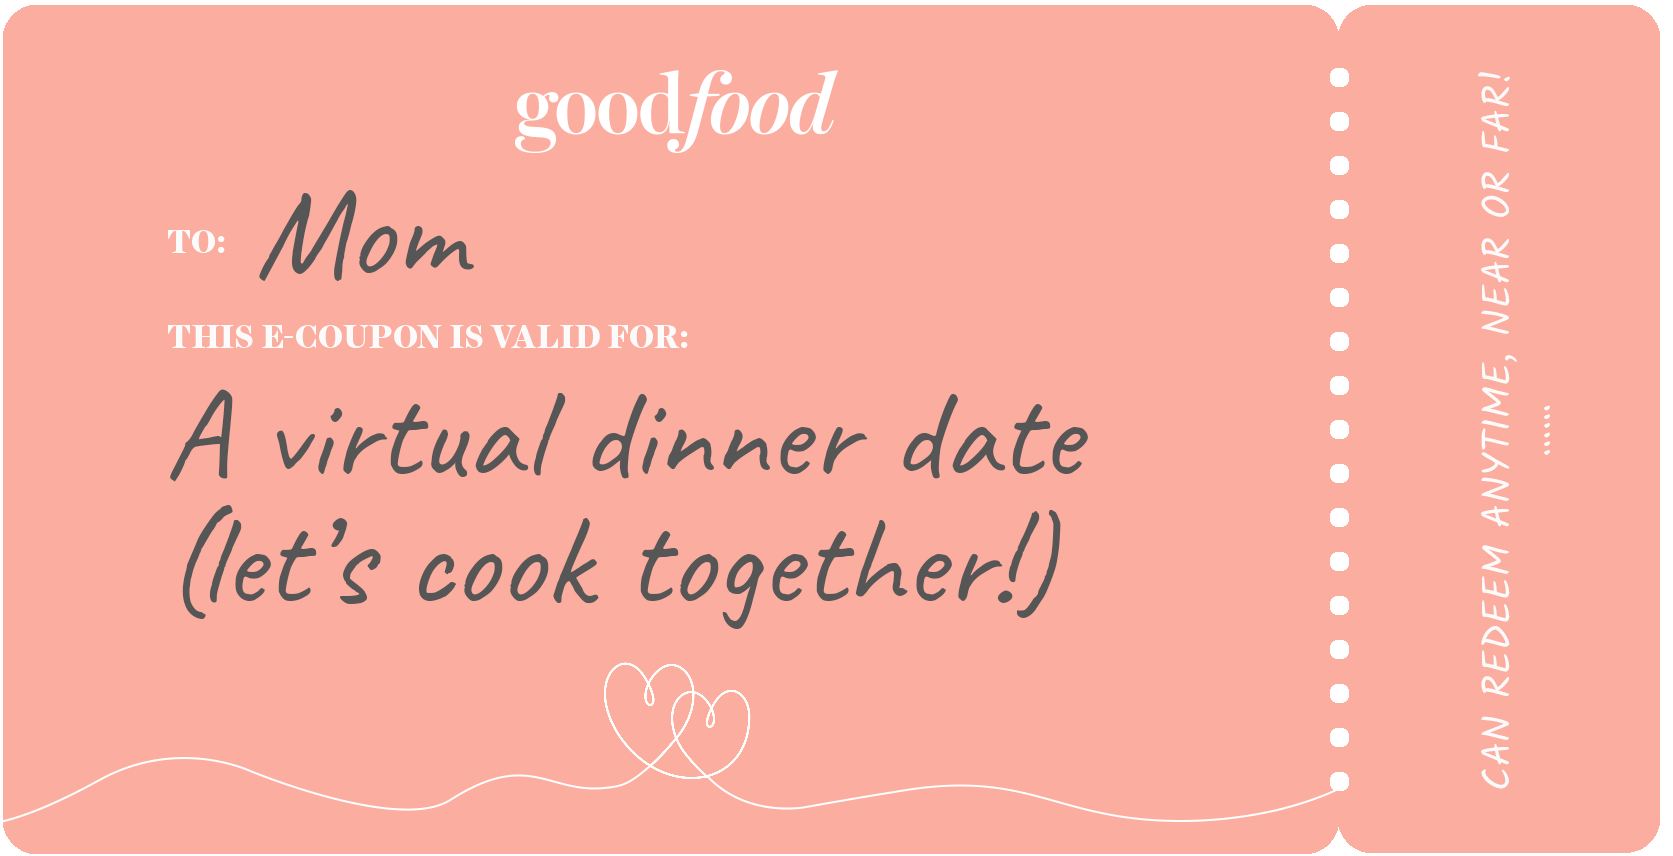 Coupon example, virtual dinner date